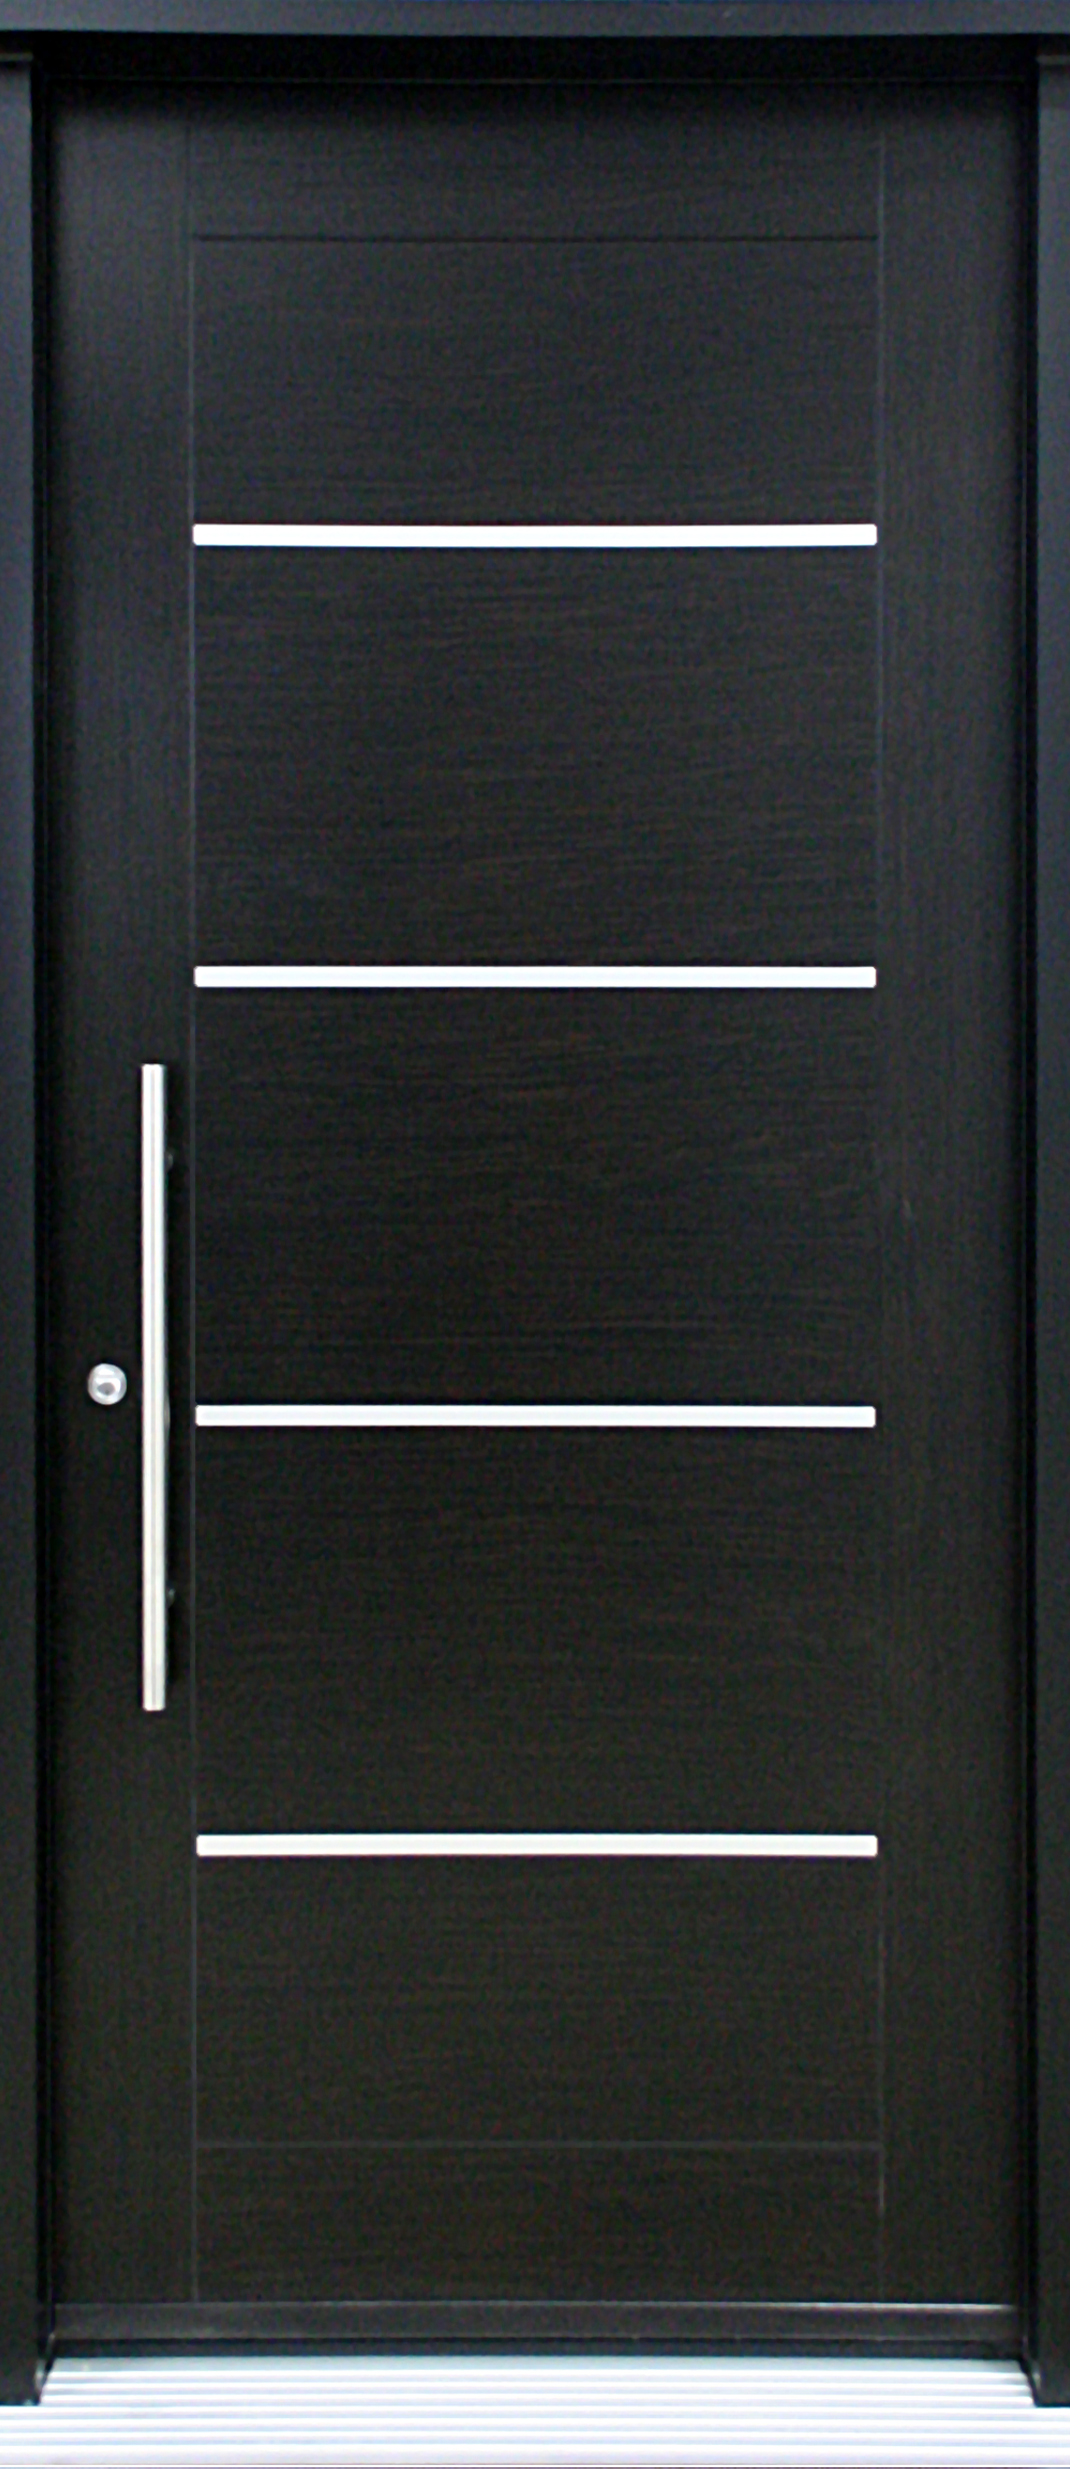 mod le de porte contemporaine sigma2 portatec fabricant de porte d 39 entr e sur mesure. Black Bedroom Furniture Sets. Home Design Ideas